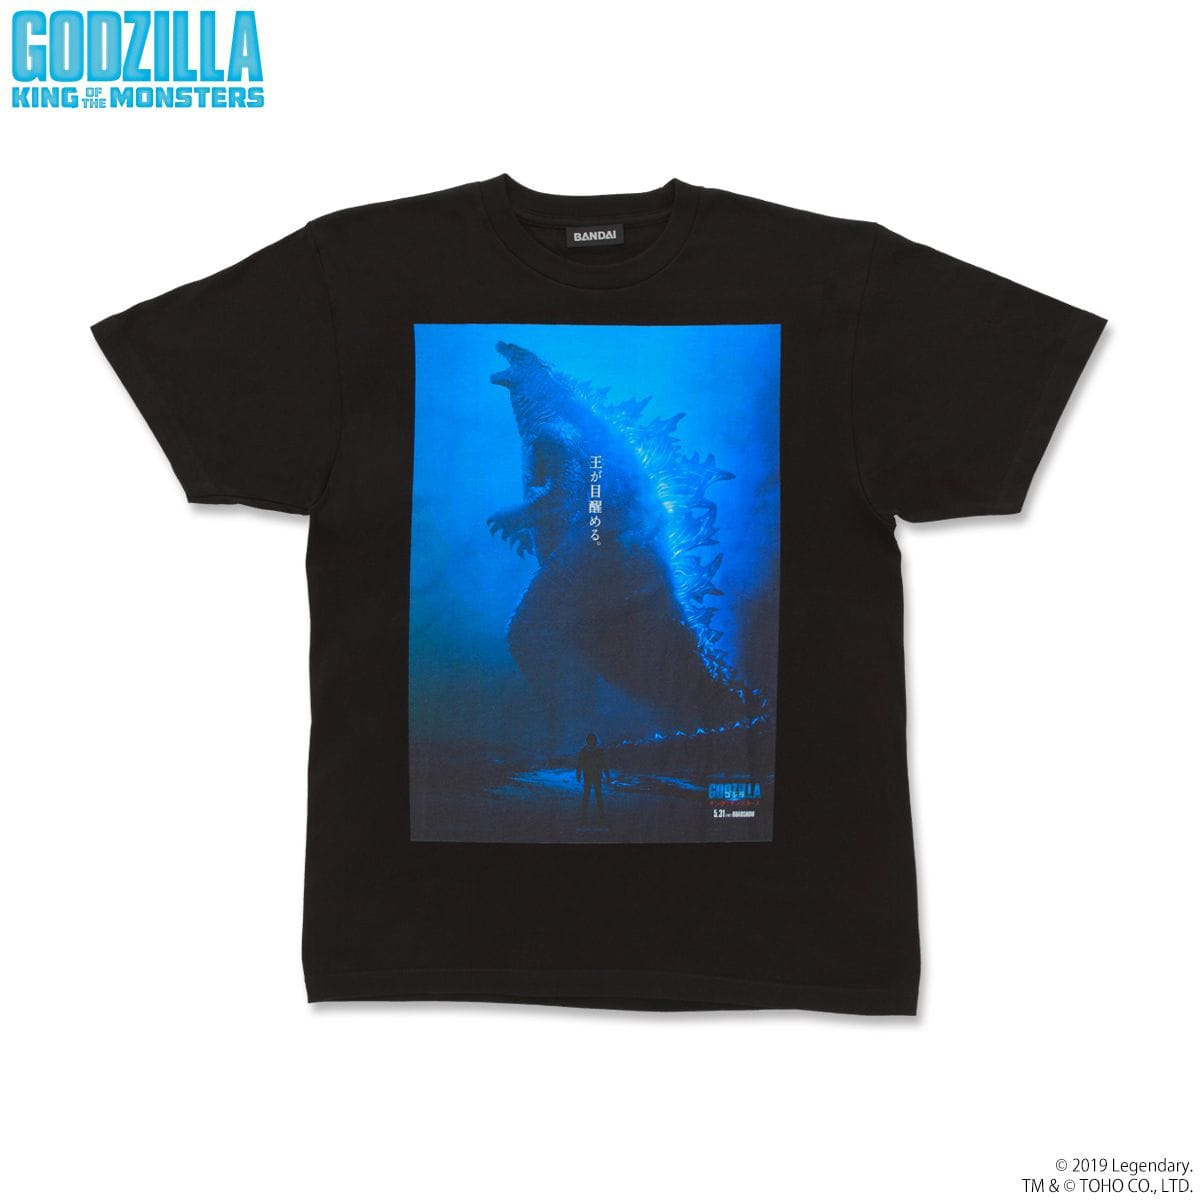 GODZILLA King of the Monsters ポスターTシャツ